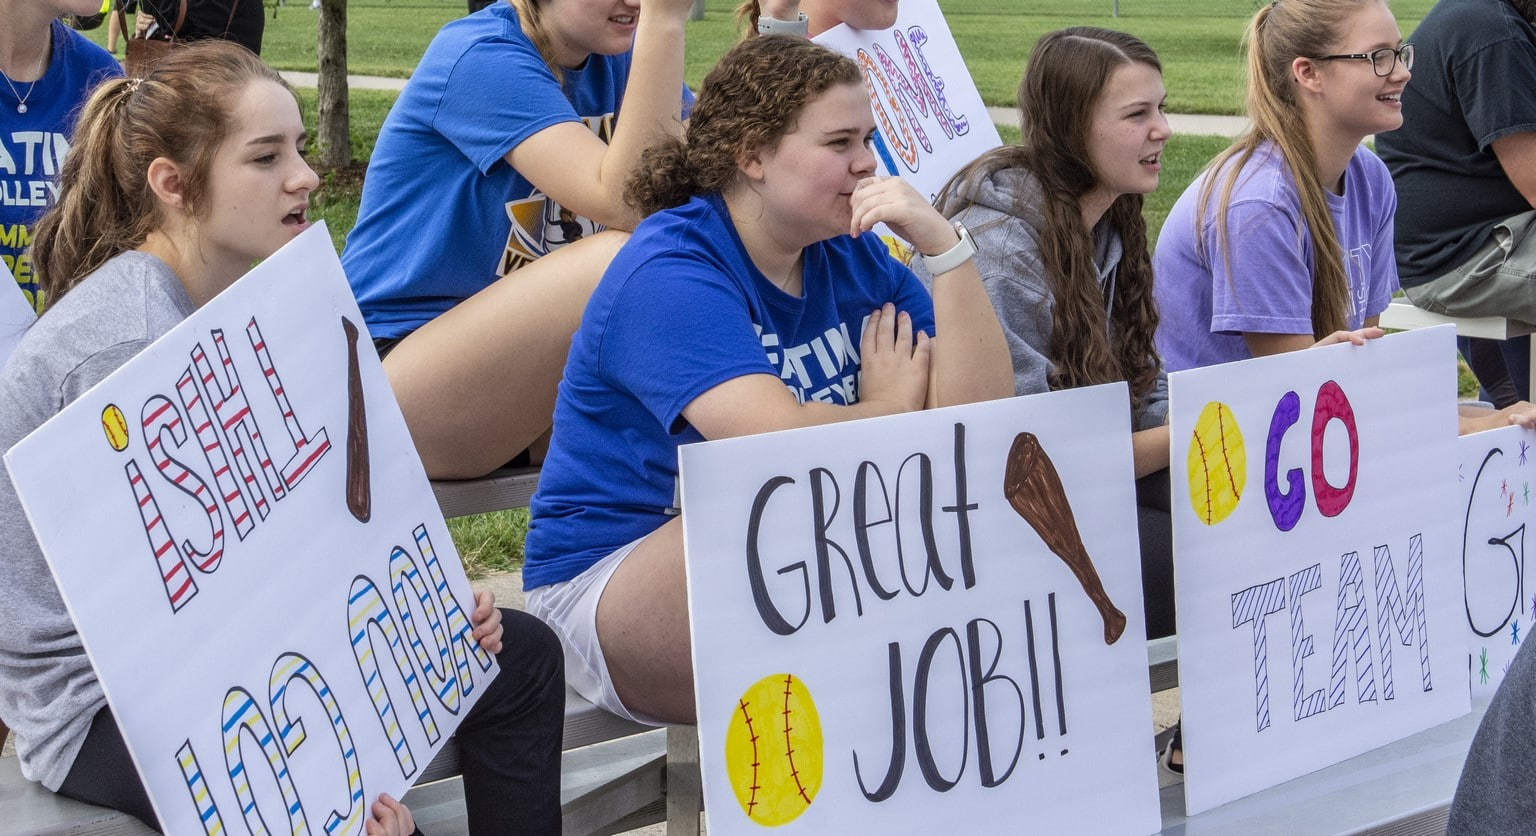 Volunteers sit on bleachers with encouraging posters watching a softball game